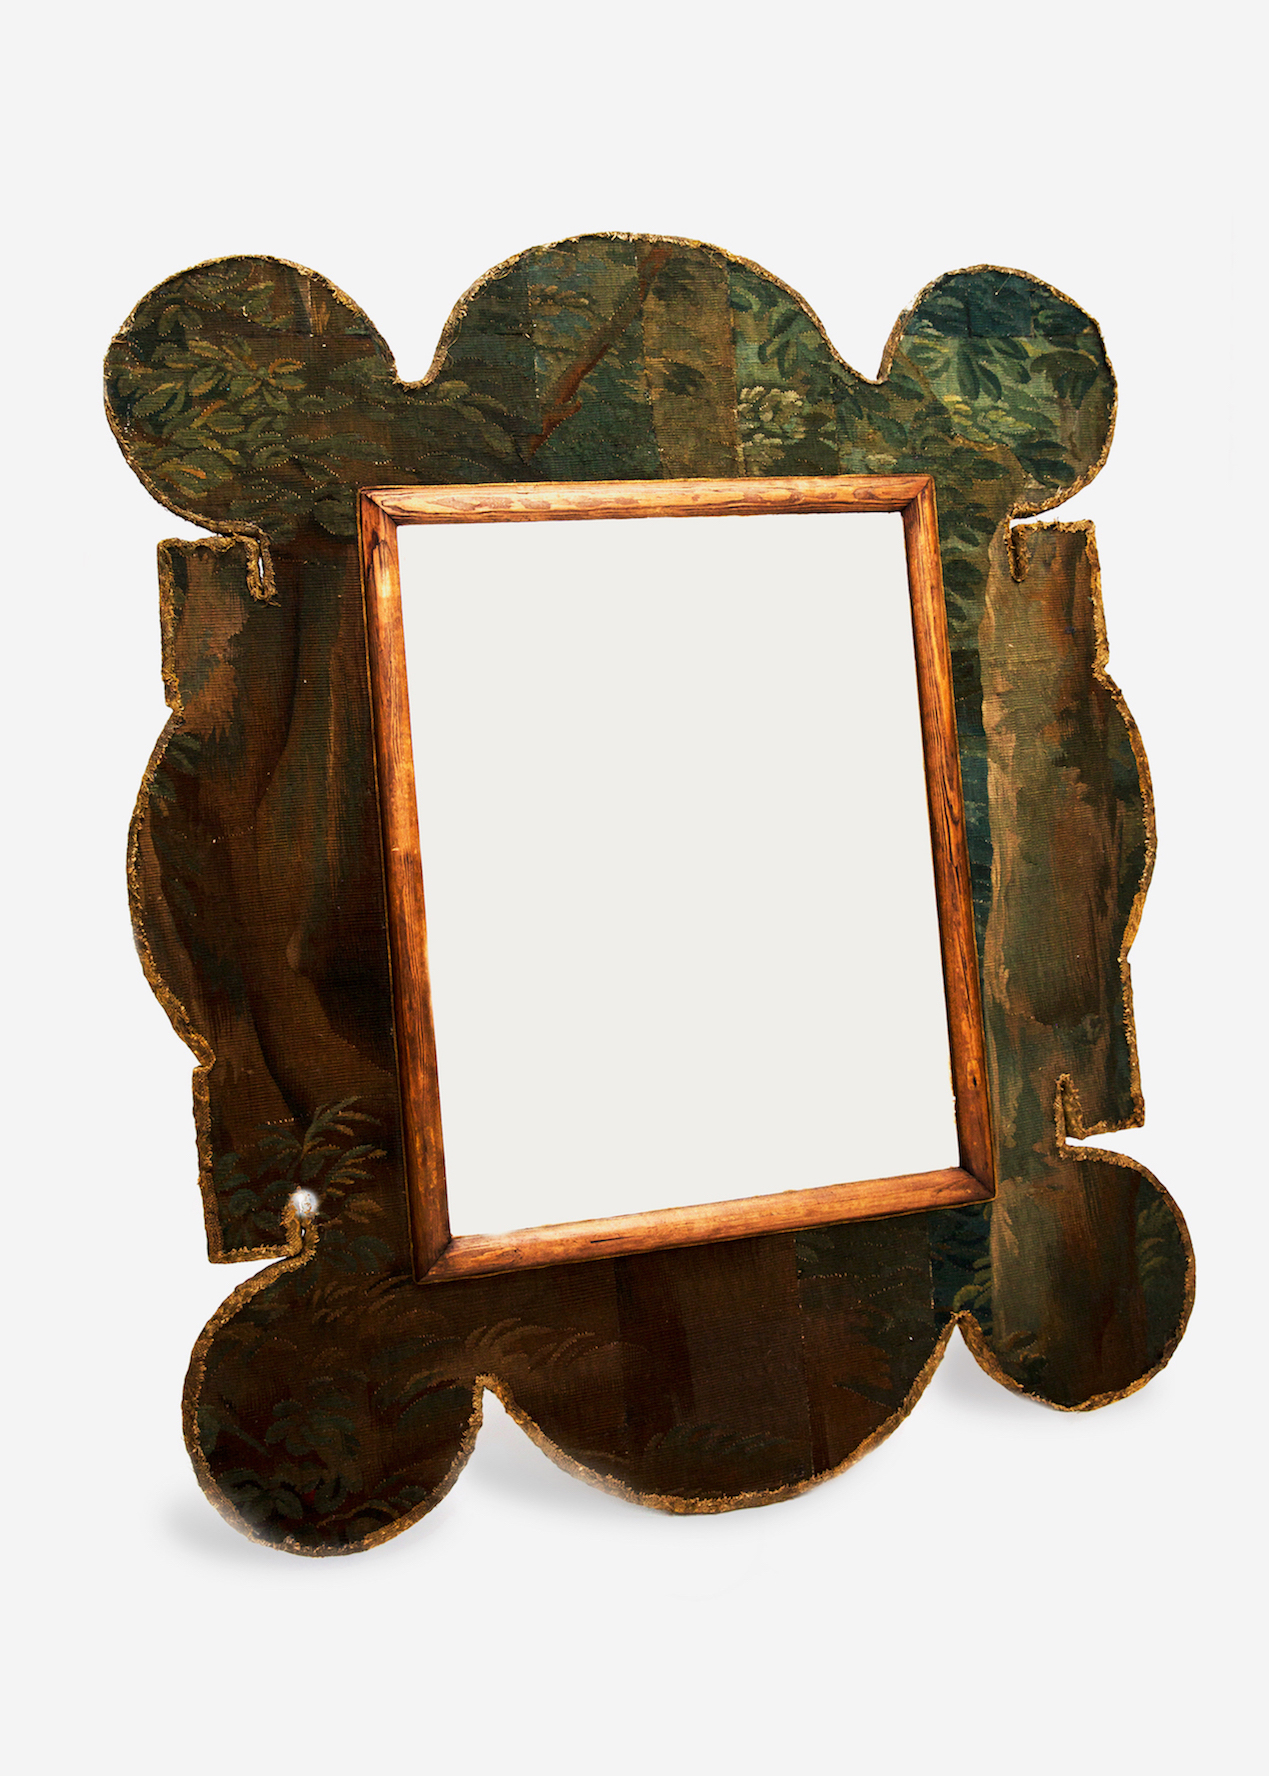 5x7_New_country_mirror_251020_LR